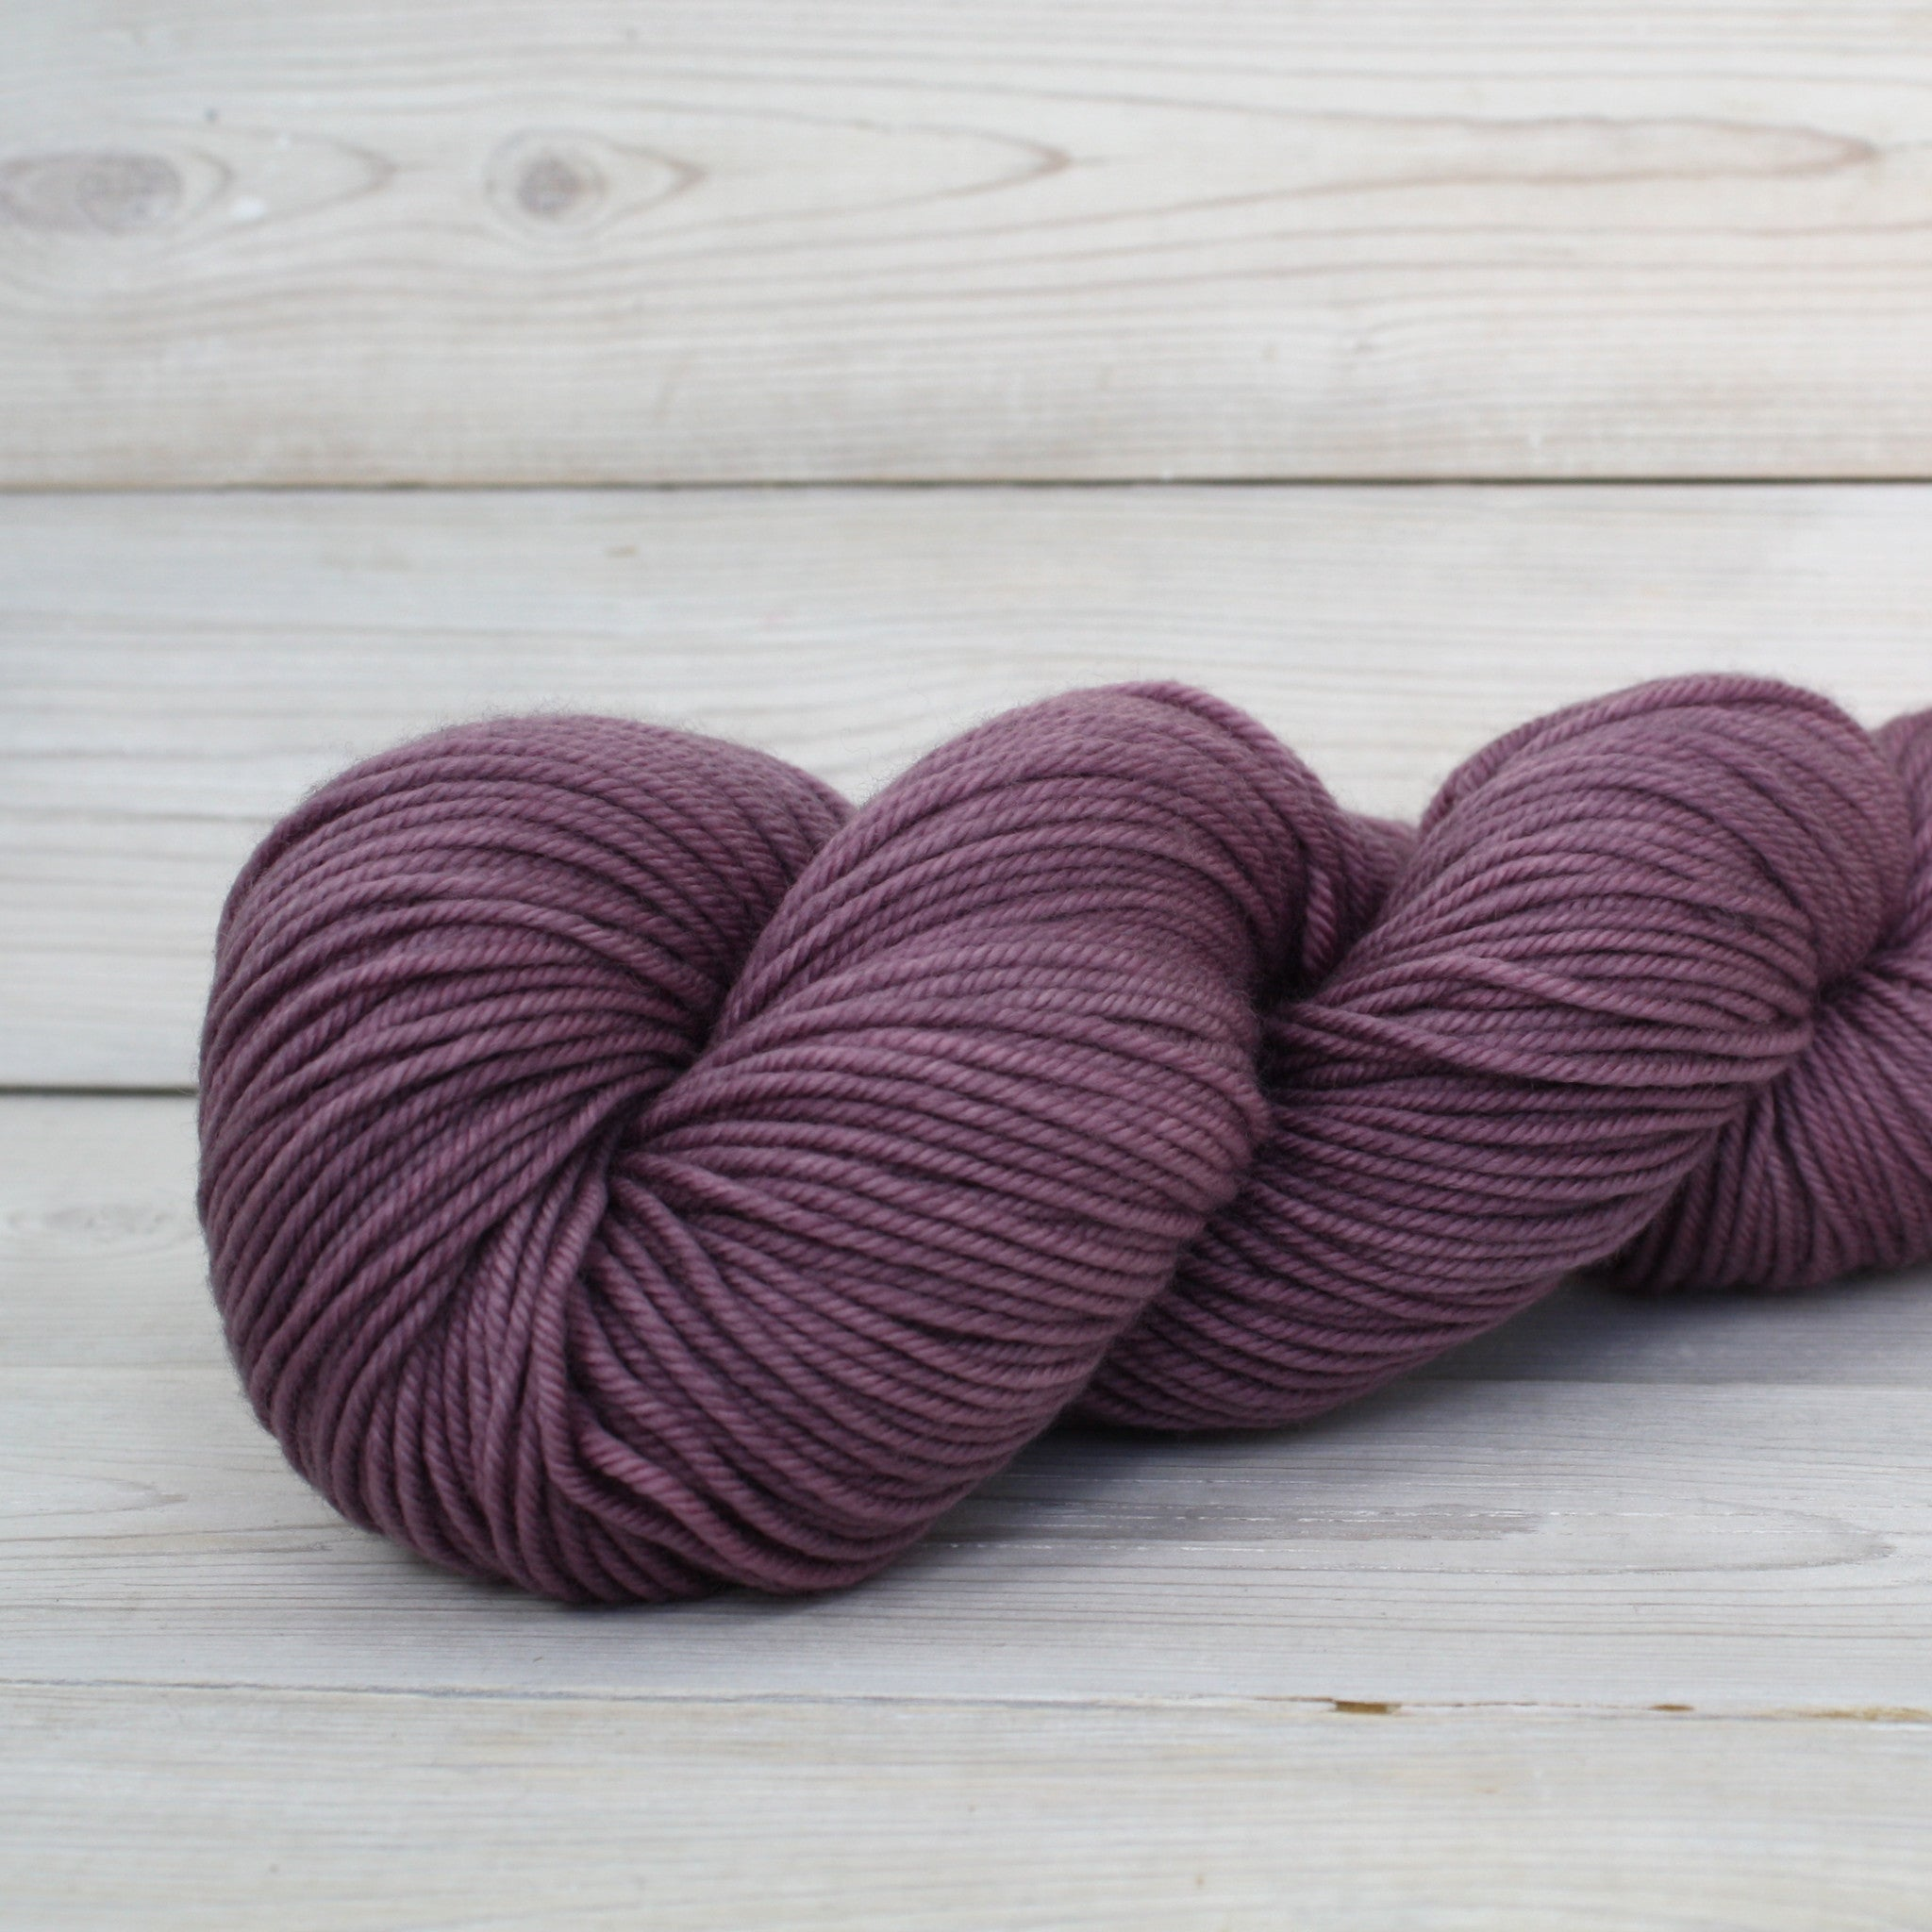 Calypso Yarn | Colorway: Sanctuary